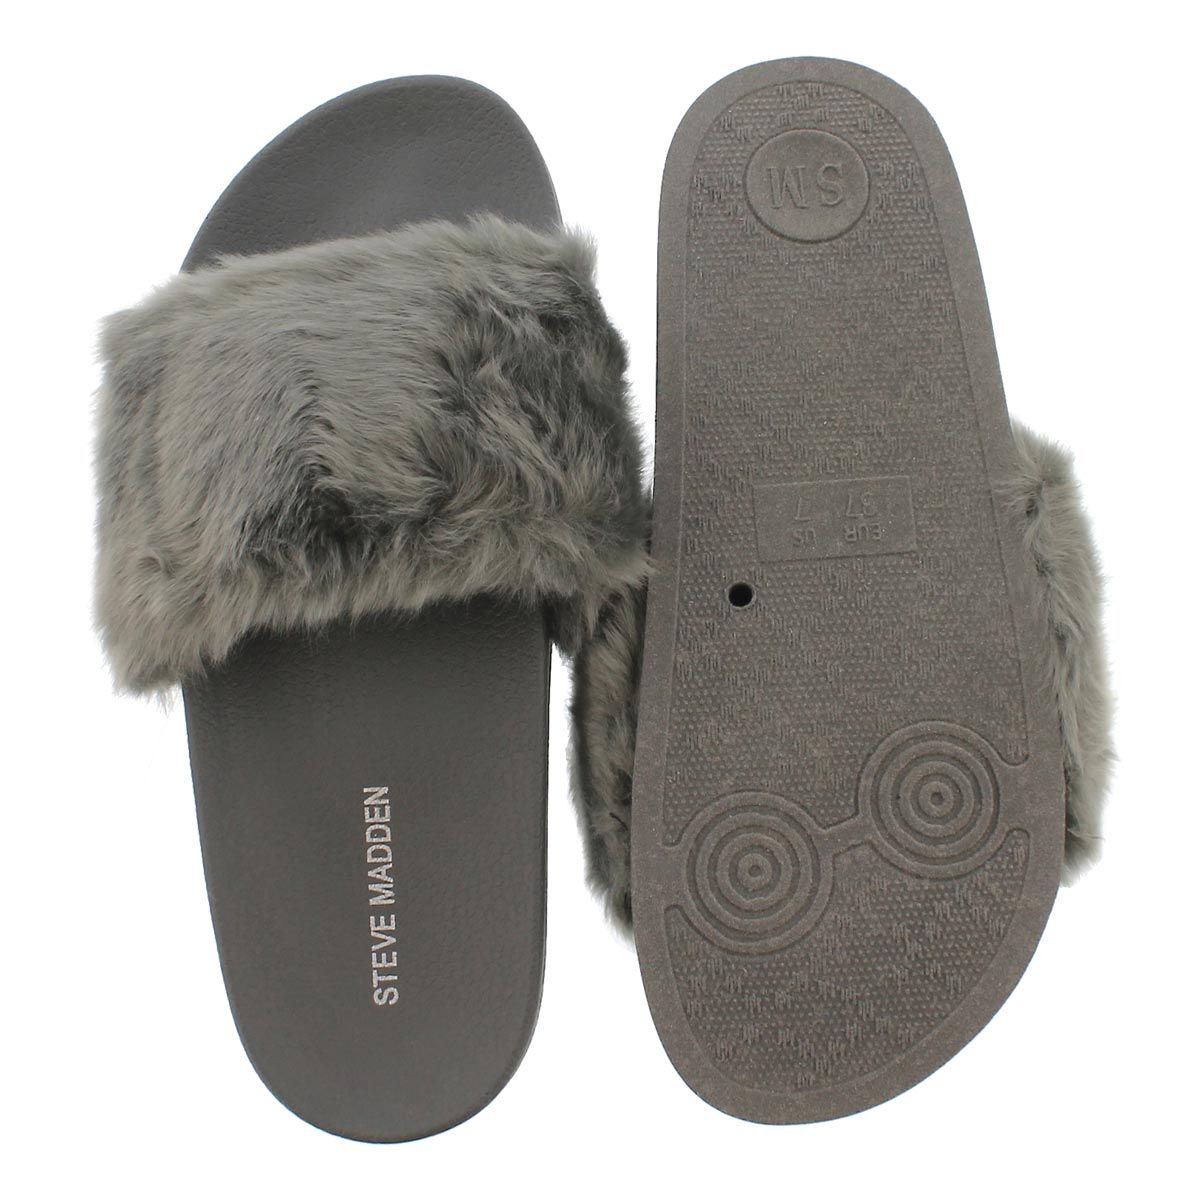 Creative Women39s Fur Fluffy Slides Marabou Mules Sandals Feather Slippers Home